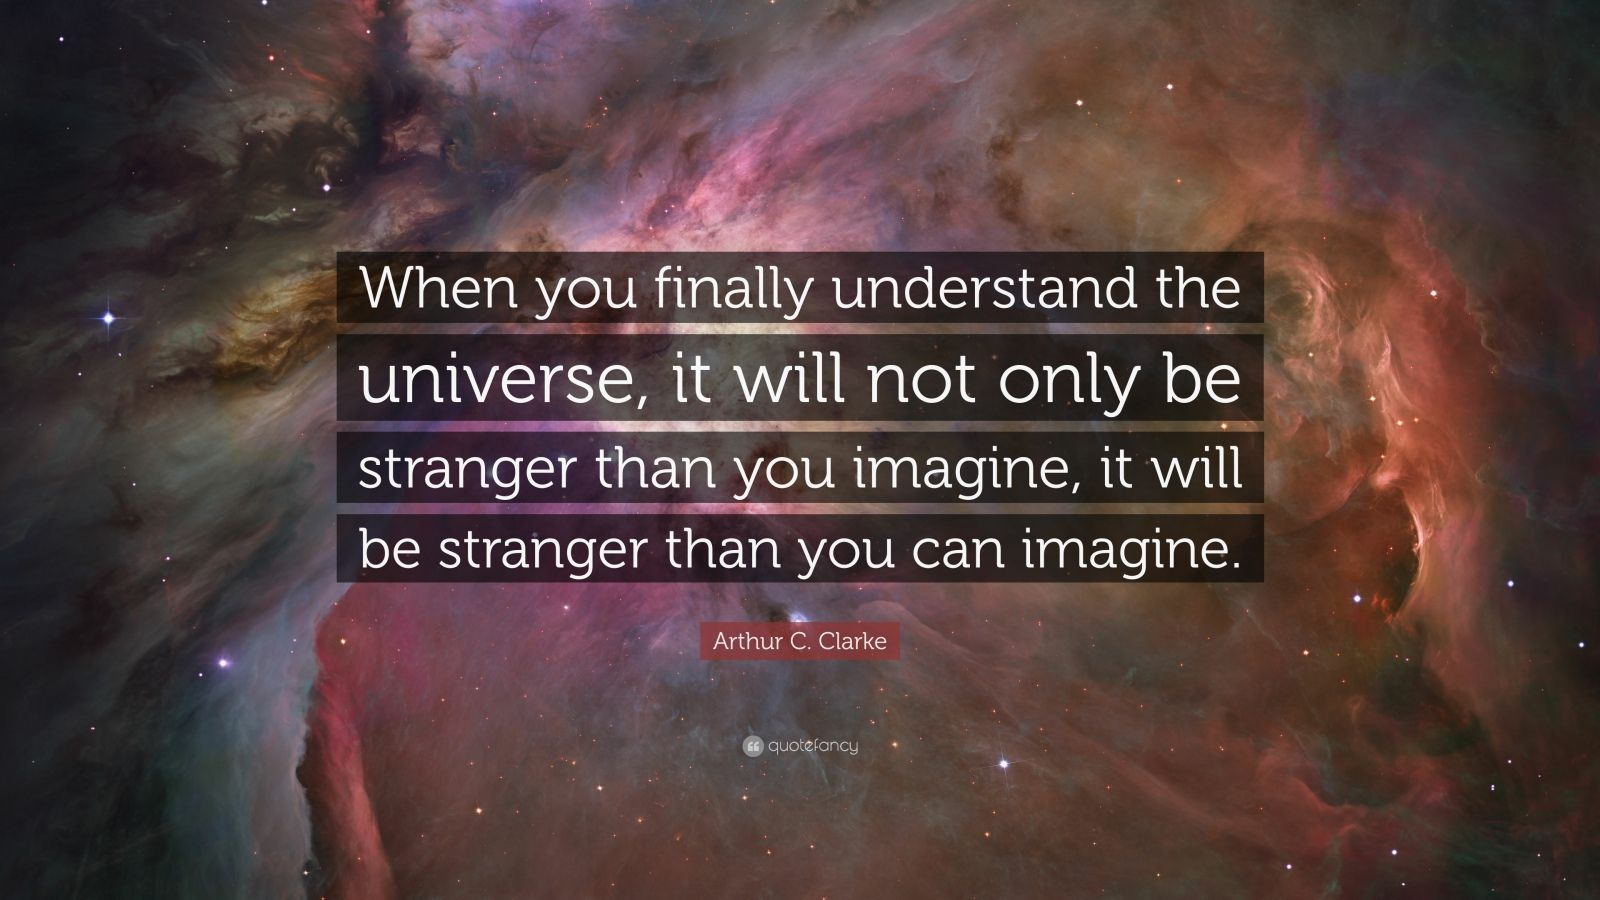 """Arthur C. Clarke Quote: """"When you finally understand the universe, it will not only be stranger than you imagine, it will be stranger than you can imagine."""""""